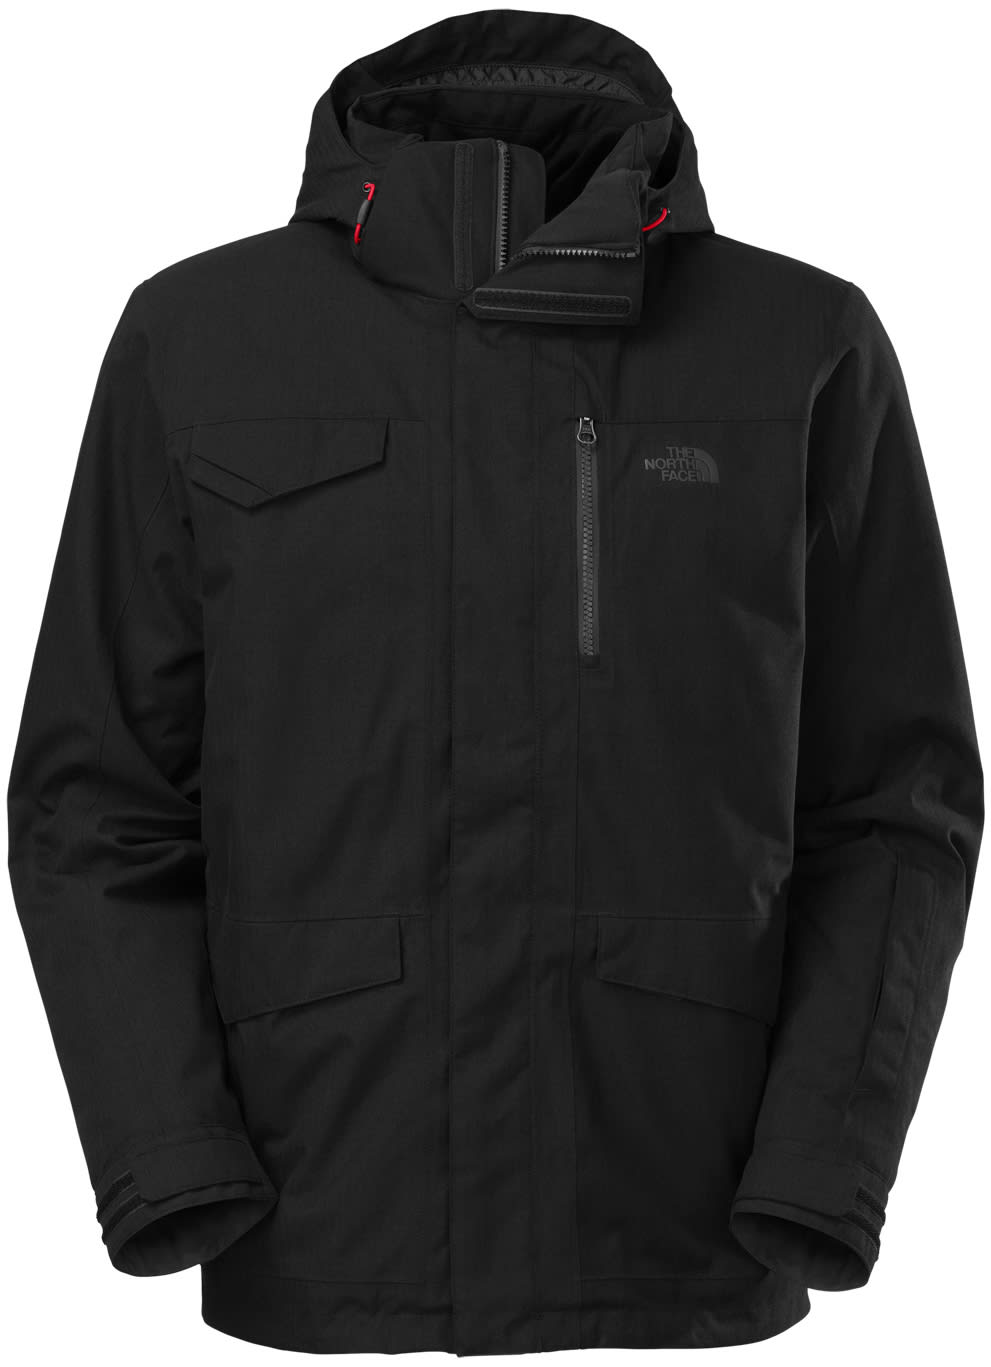 1f6ec39243 The North Face Gatekeeper 2.0 Ski Jacket - thumbnail 1